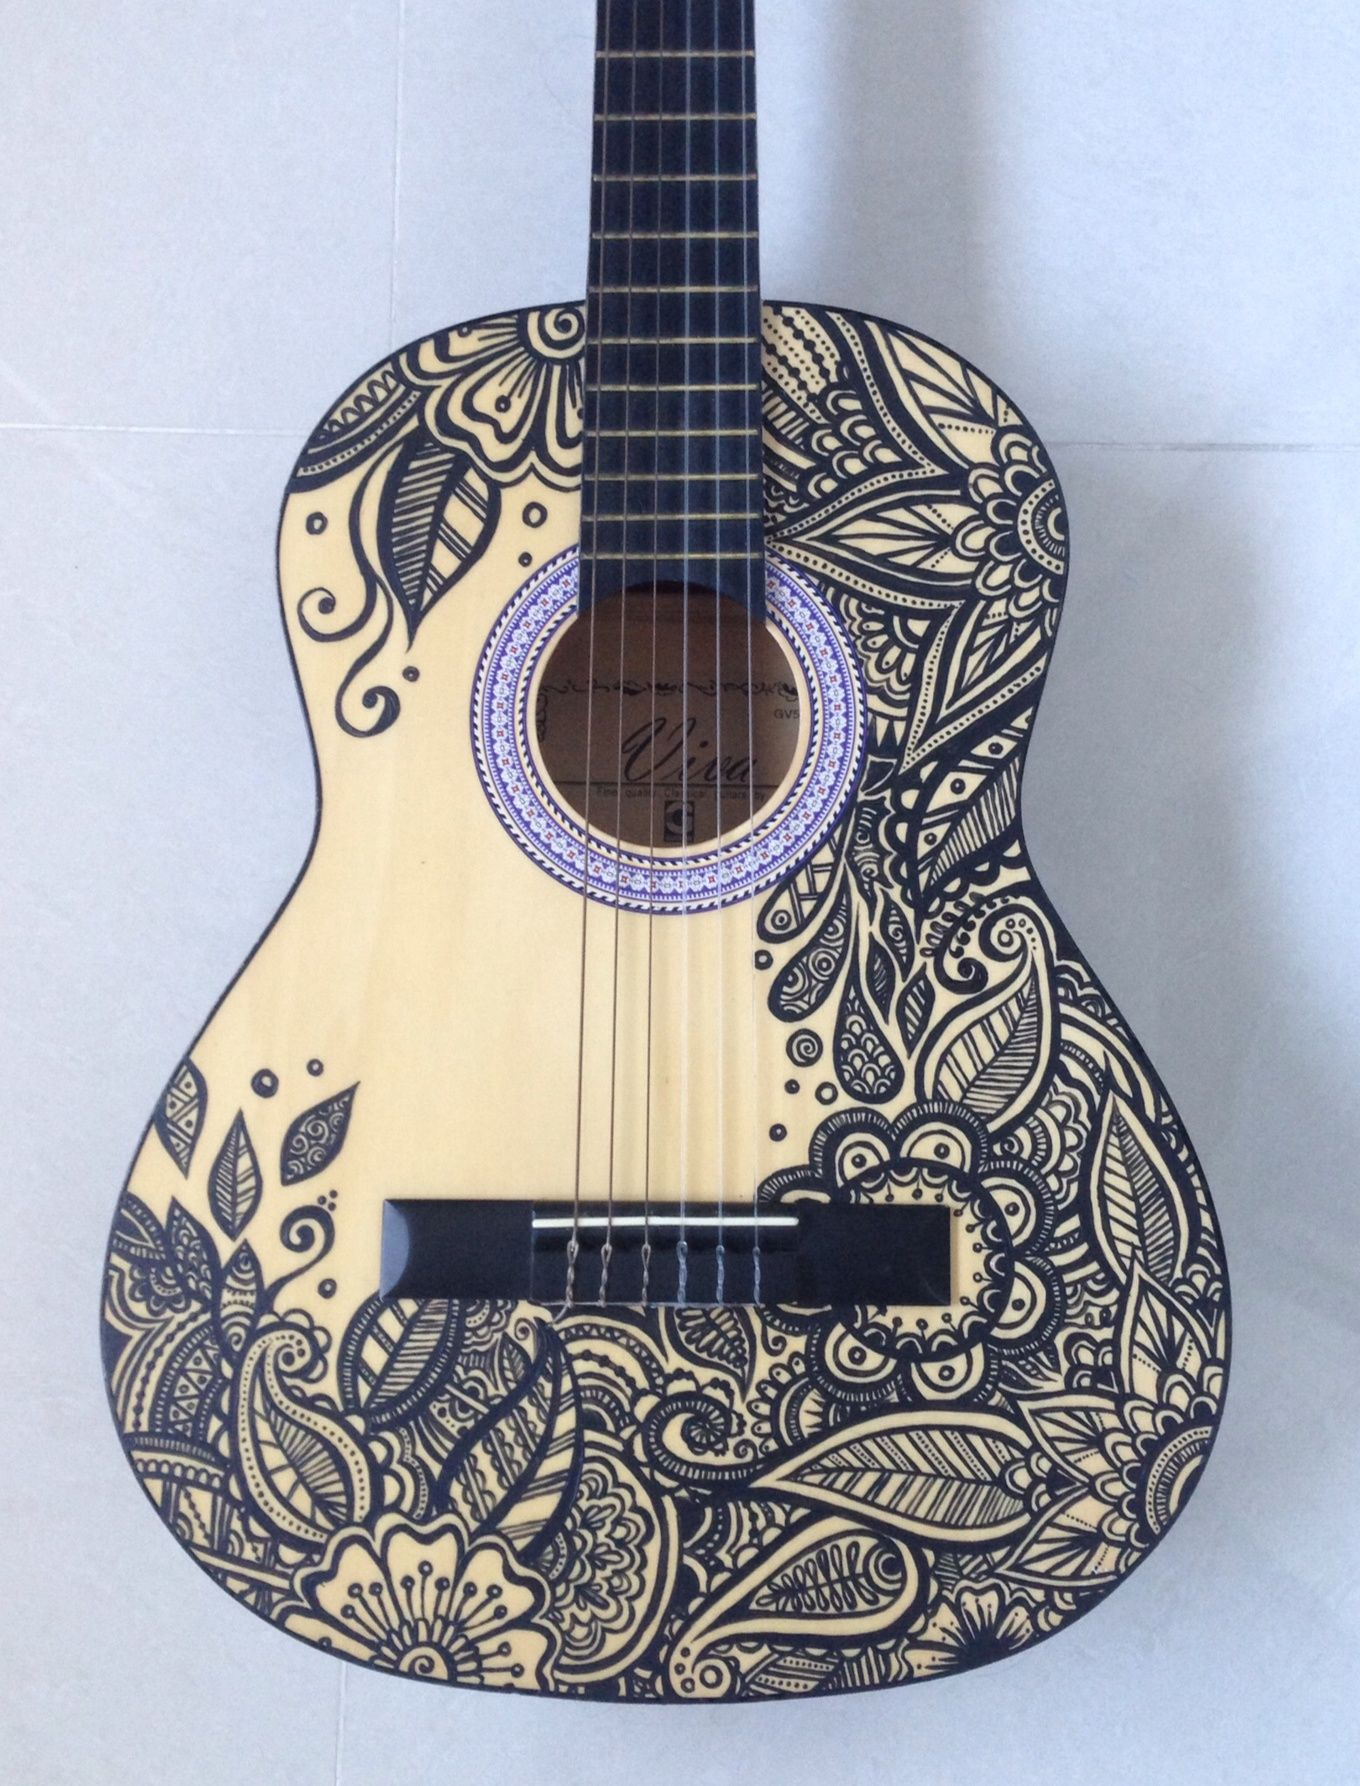 Newest Art Project - Painted Guitar! in 2020 | Acoustic ...